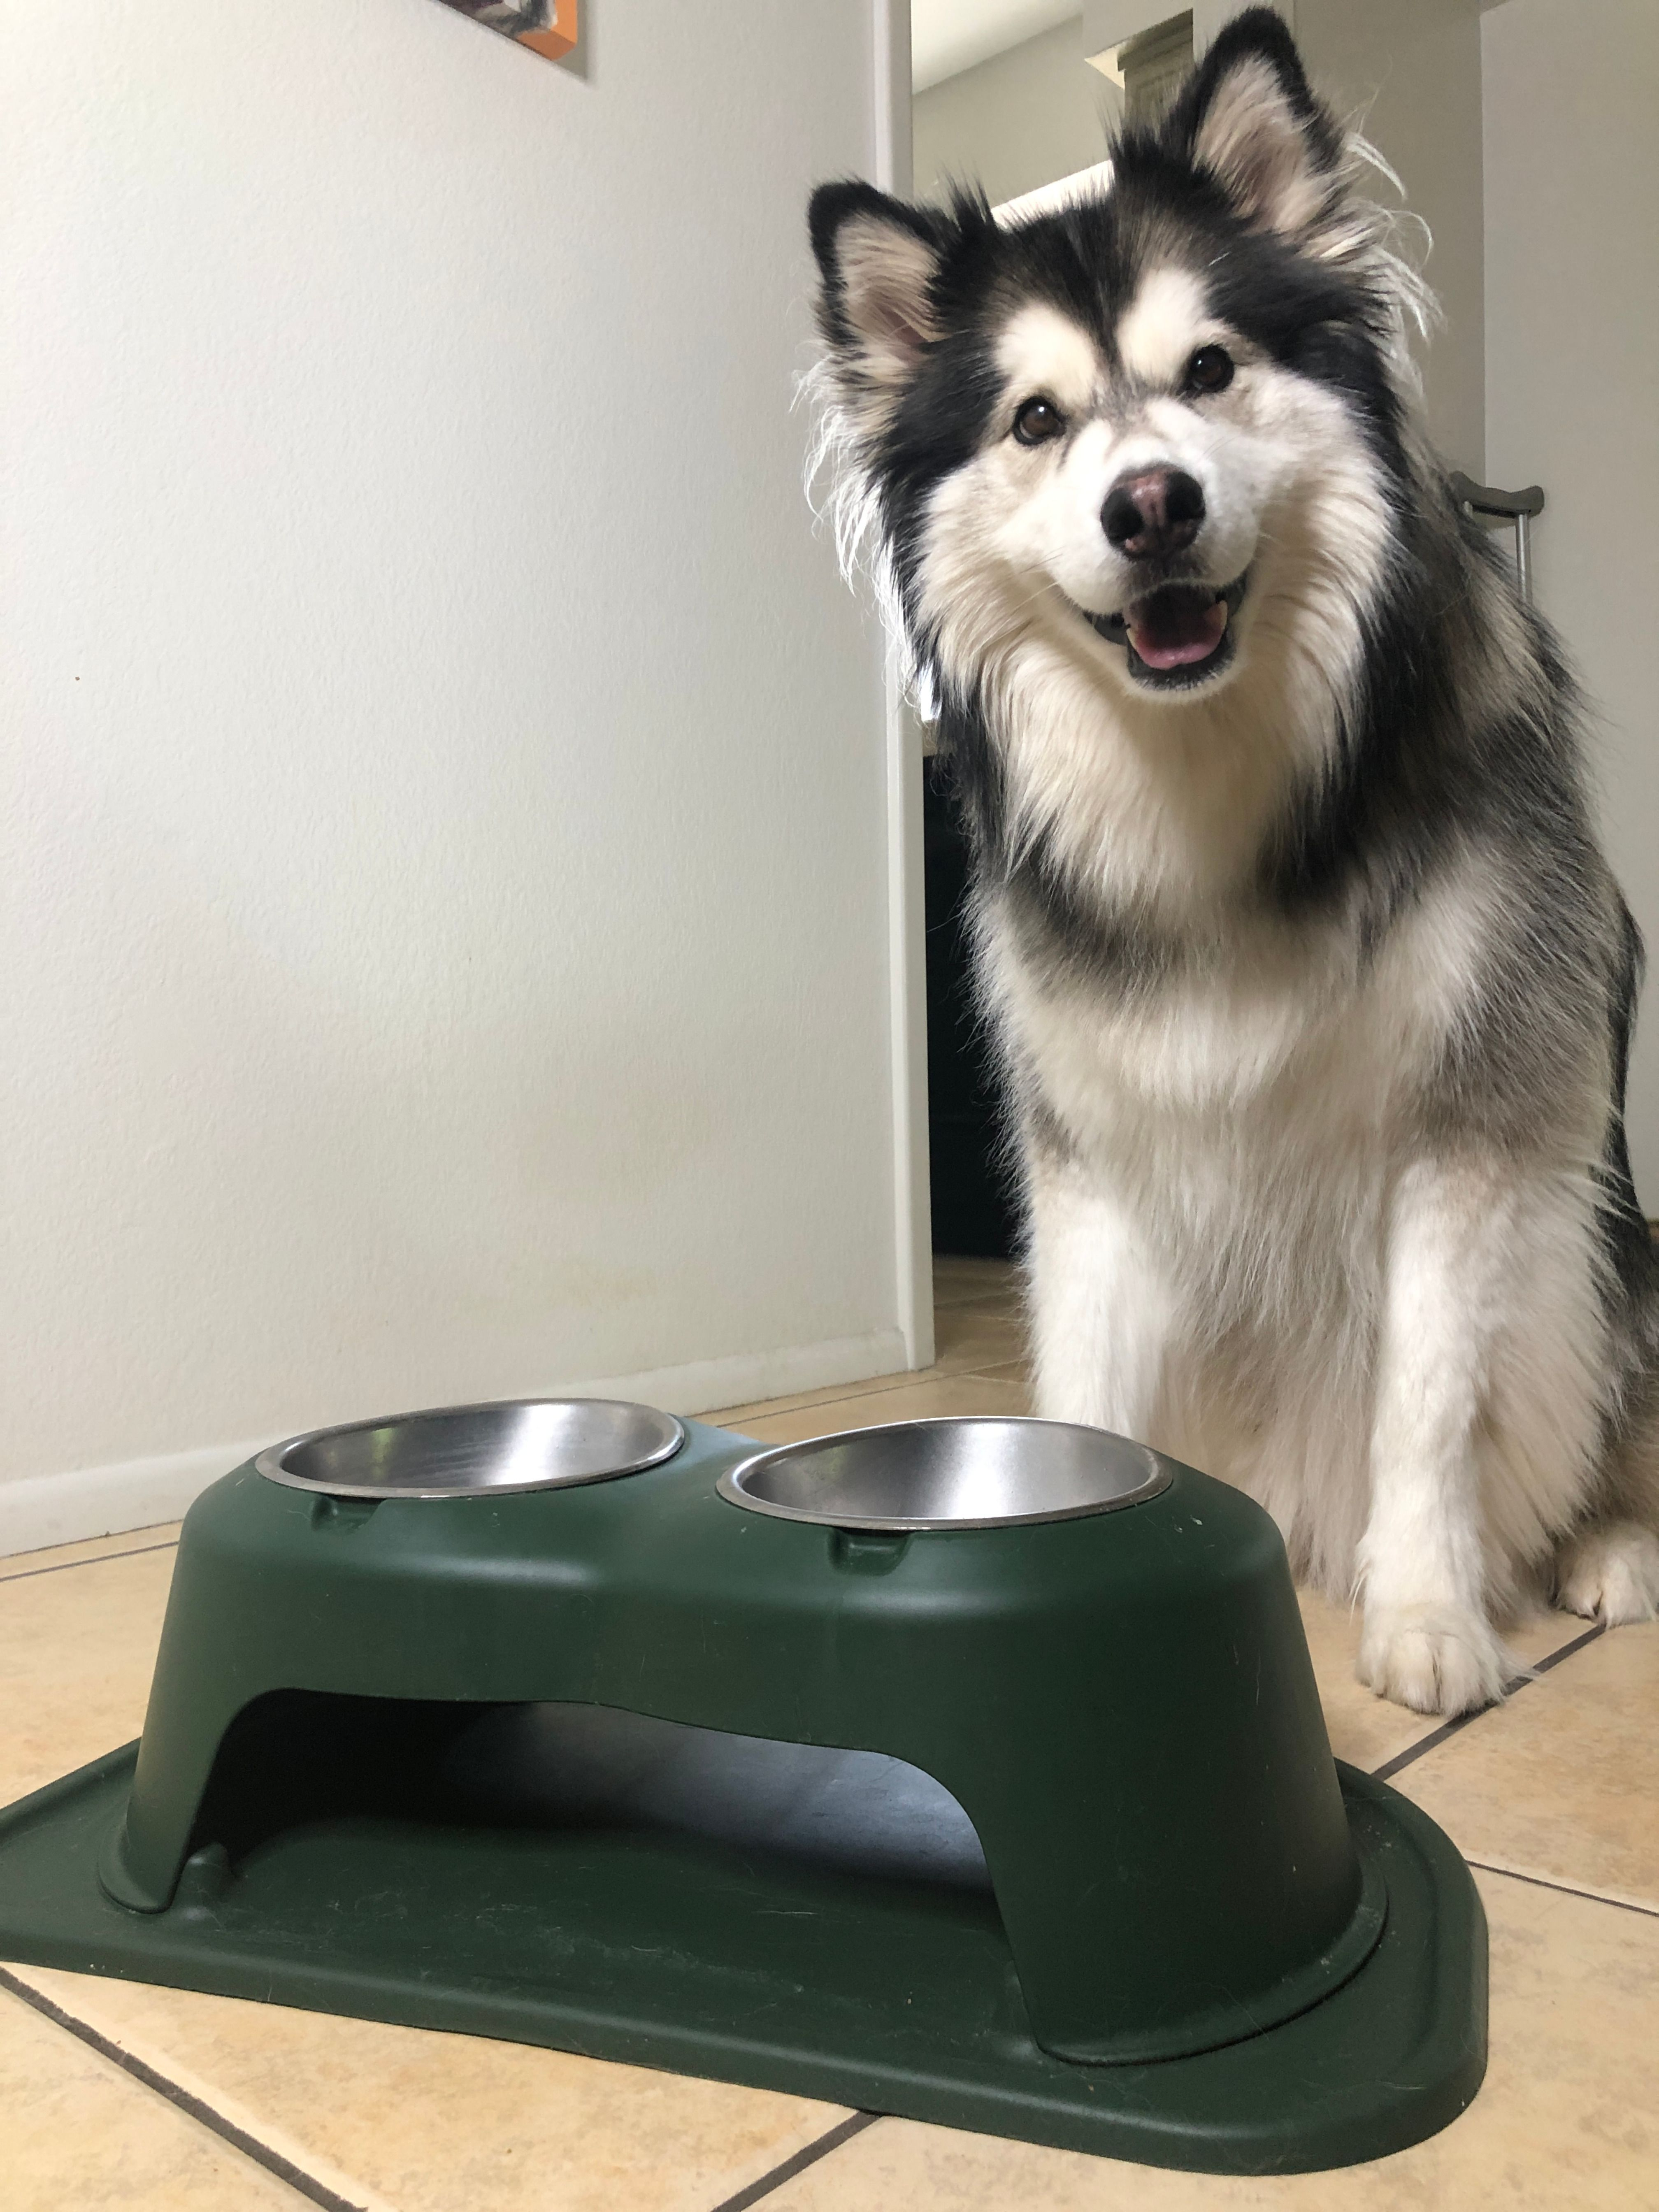 Make Your Pet Smile With The Weathertech Double High Feeding System Pets Wonder Pets Elevated Dog Bowls